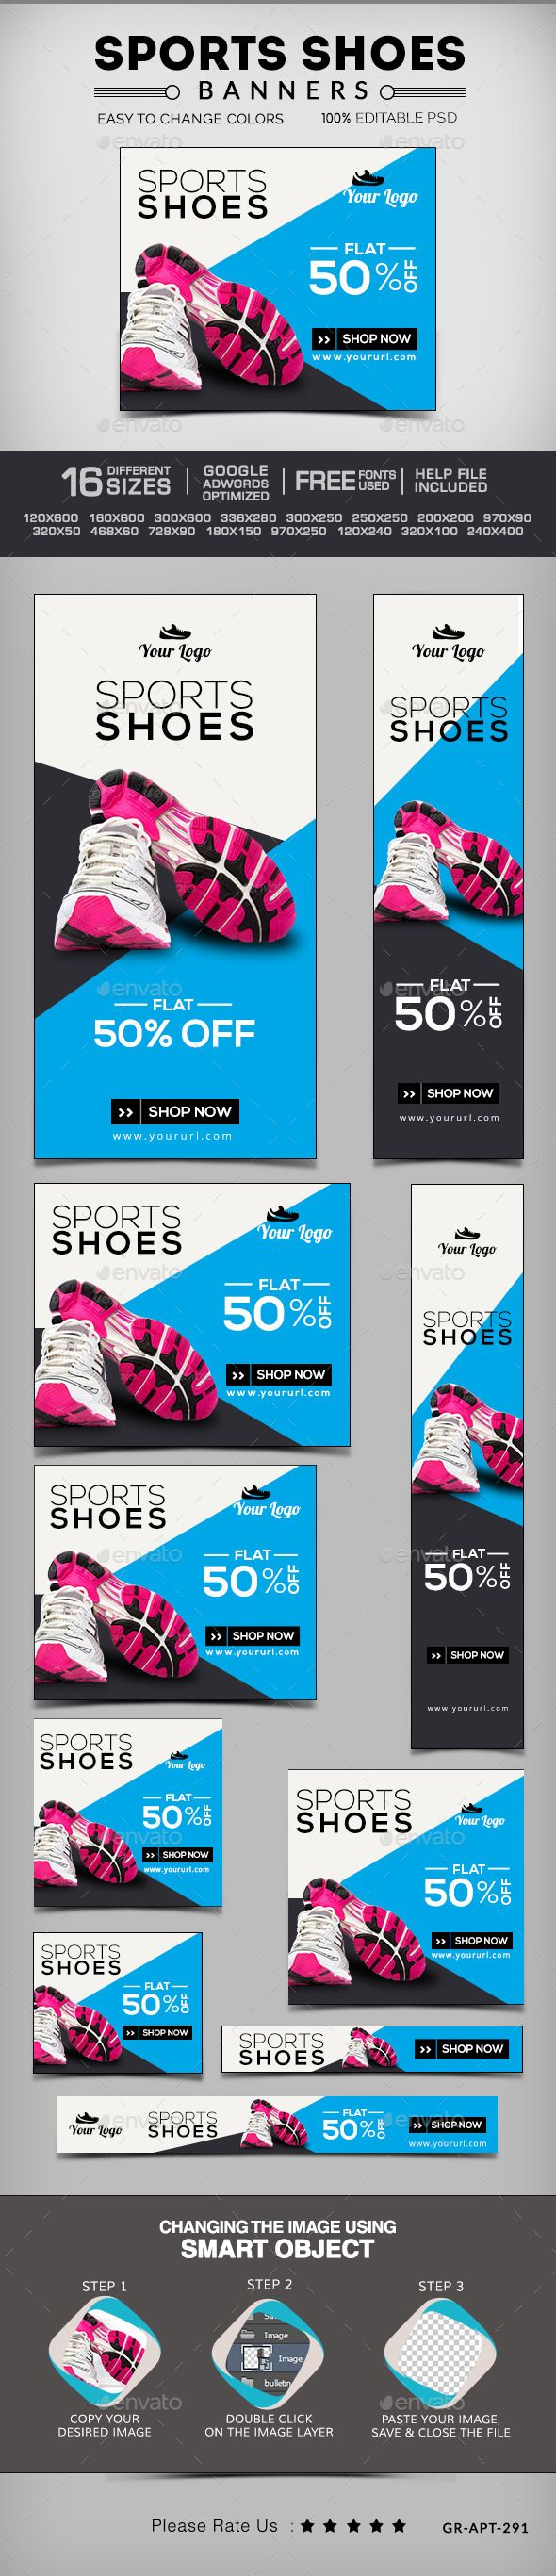 Online shoes shopping banners Template PSD | #shoeswebbanners #shoesbanners…